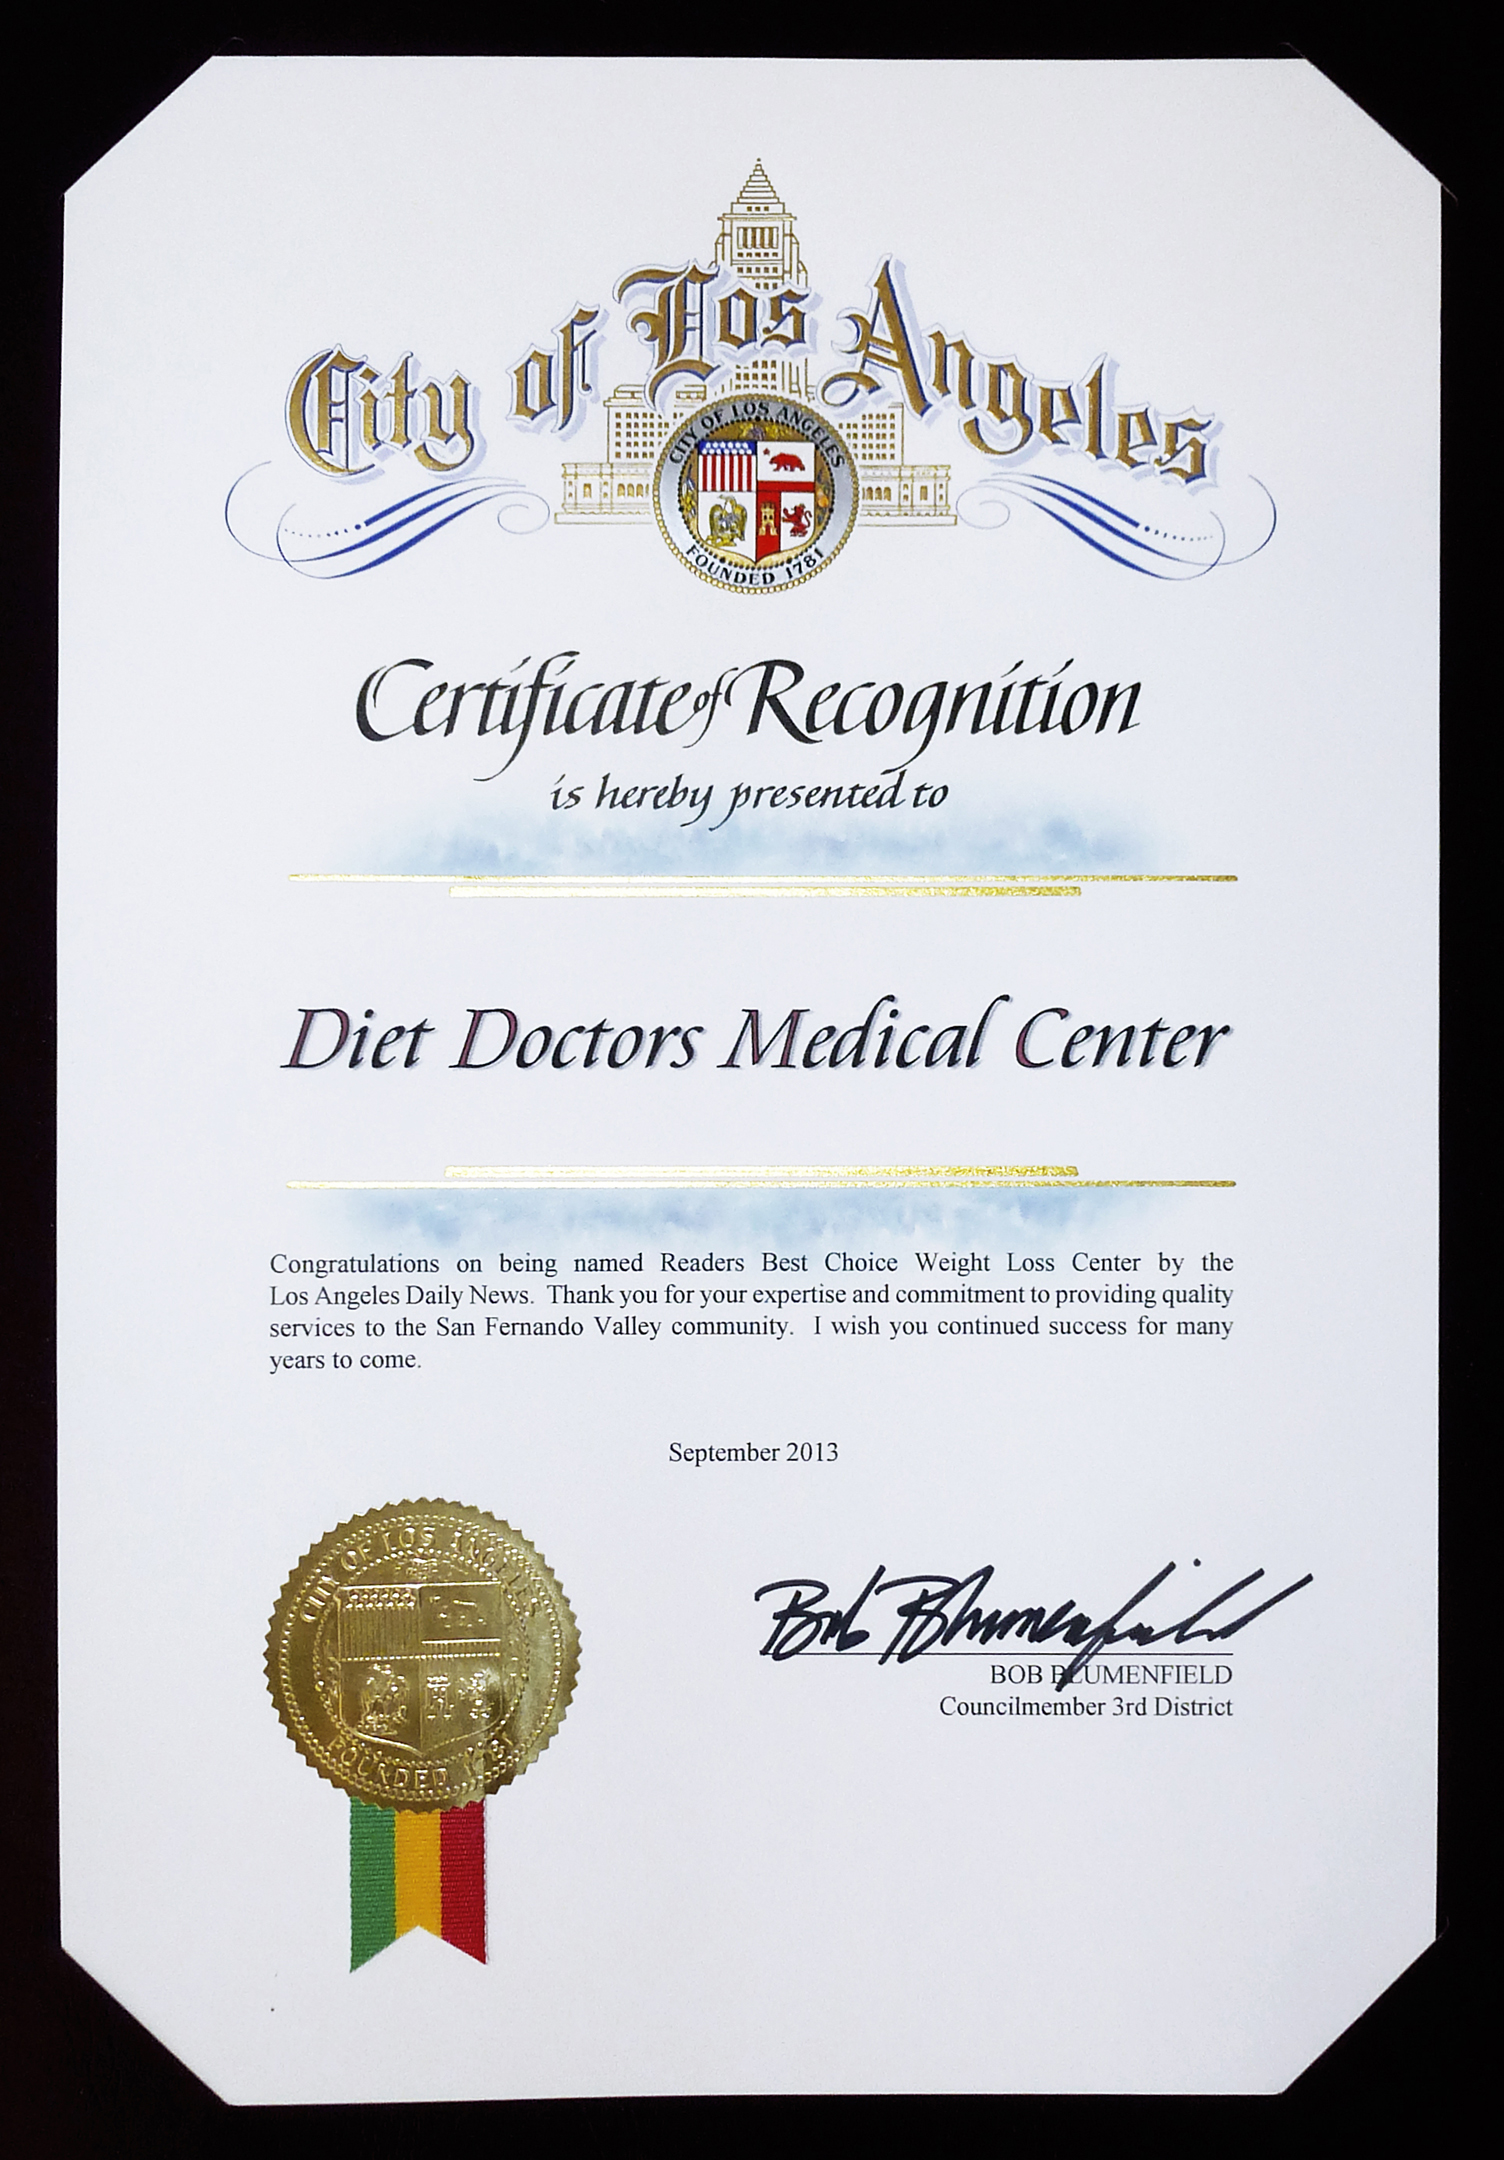 2013 City of LA - Diet Doctors